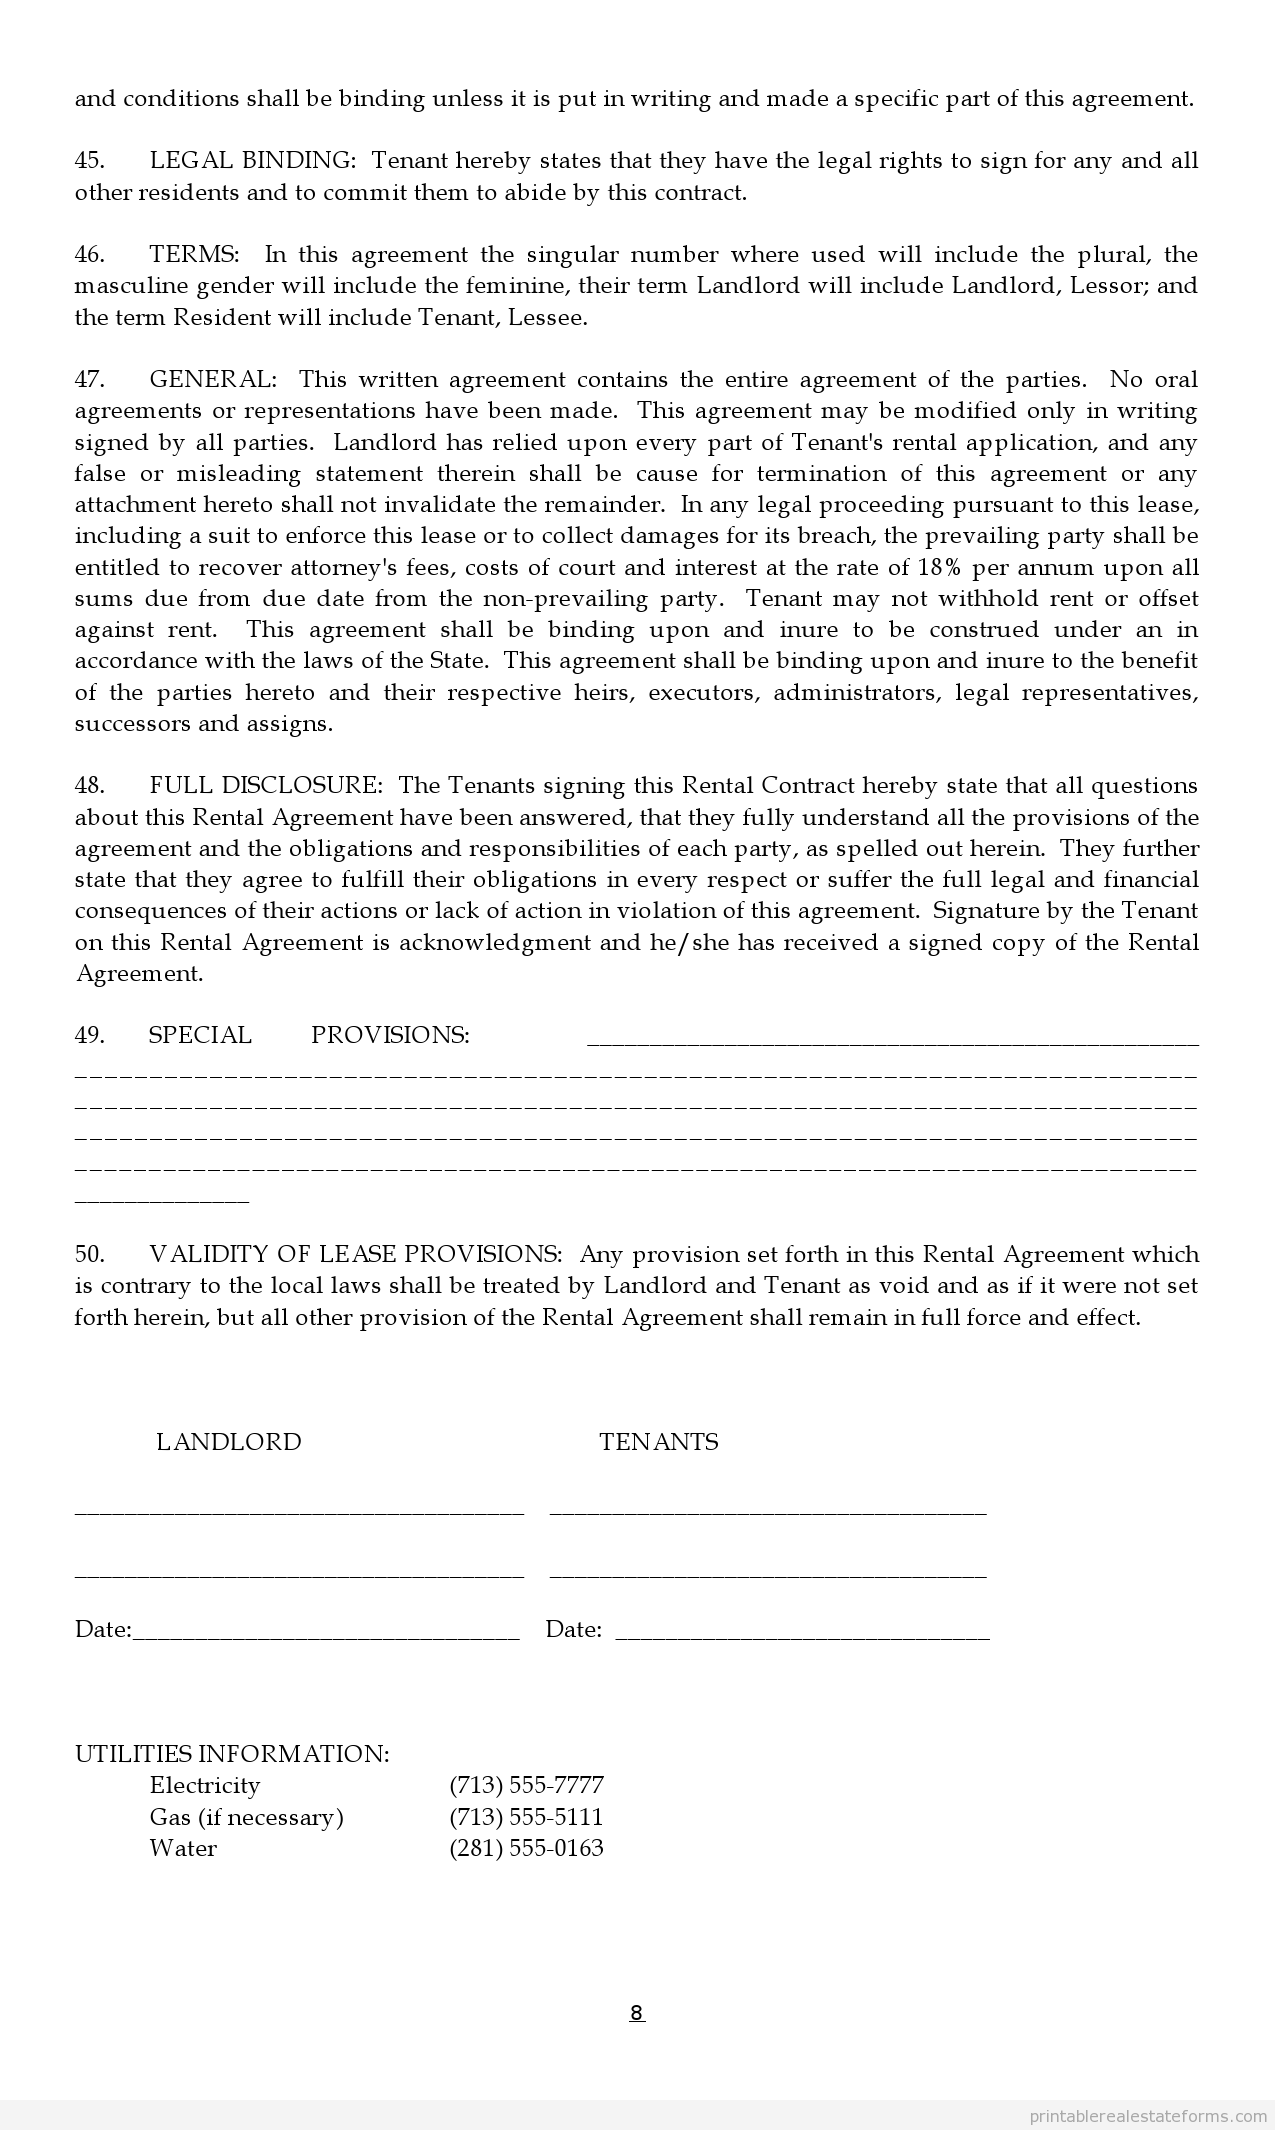 Printable Sample Lease Agreement Form  Basic Legal Template